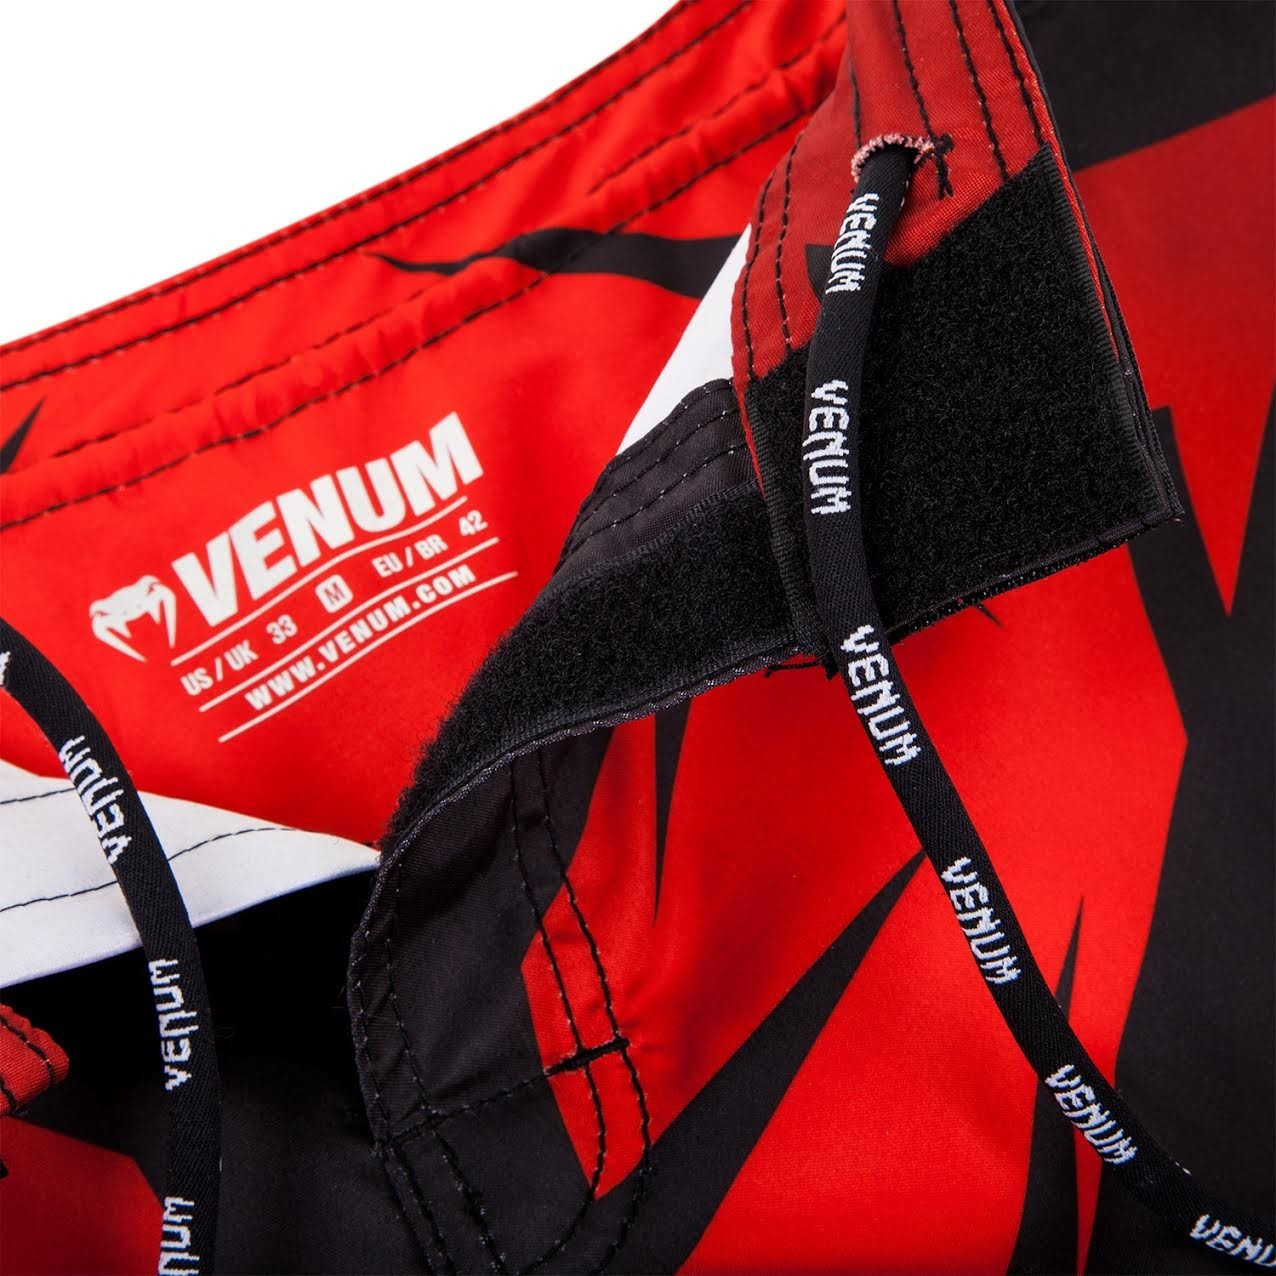 Enclosure Venum Shadow Huntere Shorts Red.  Free shipping from The Jiu Jitsu Shop.